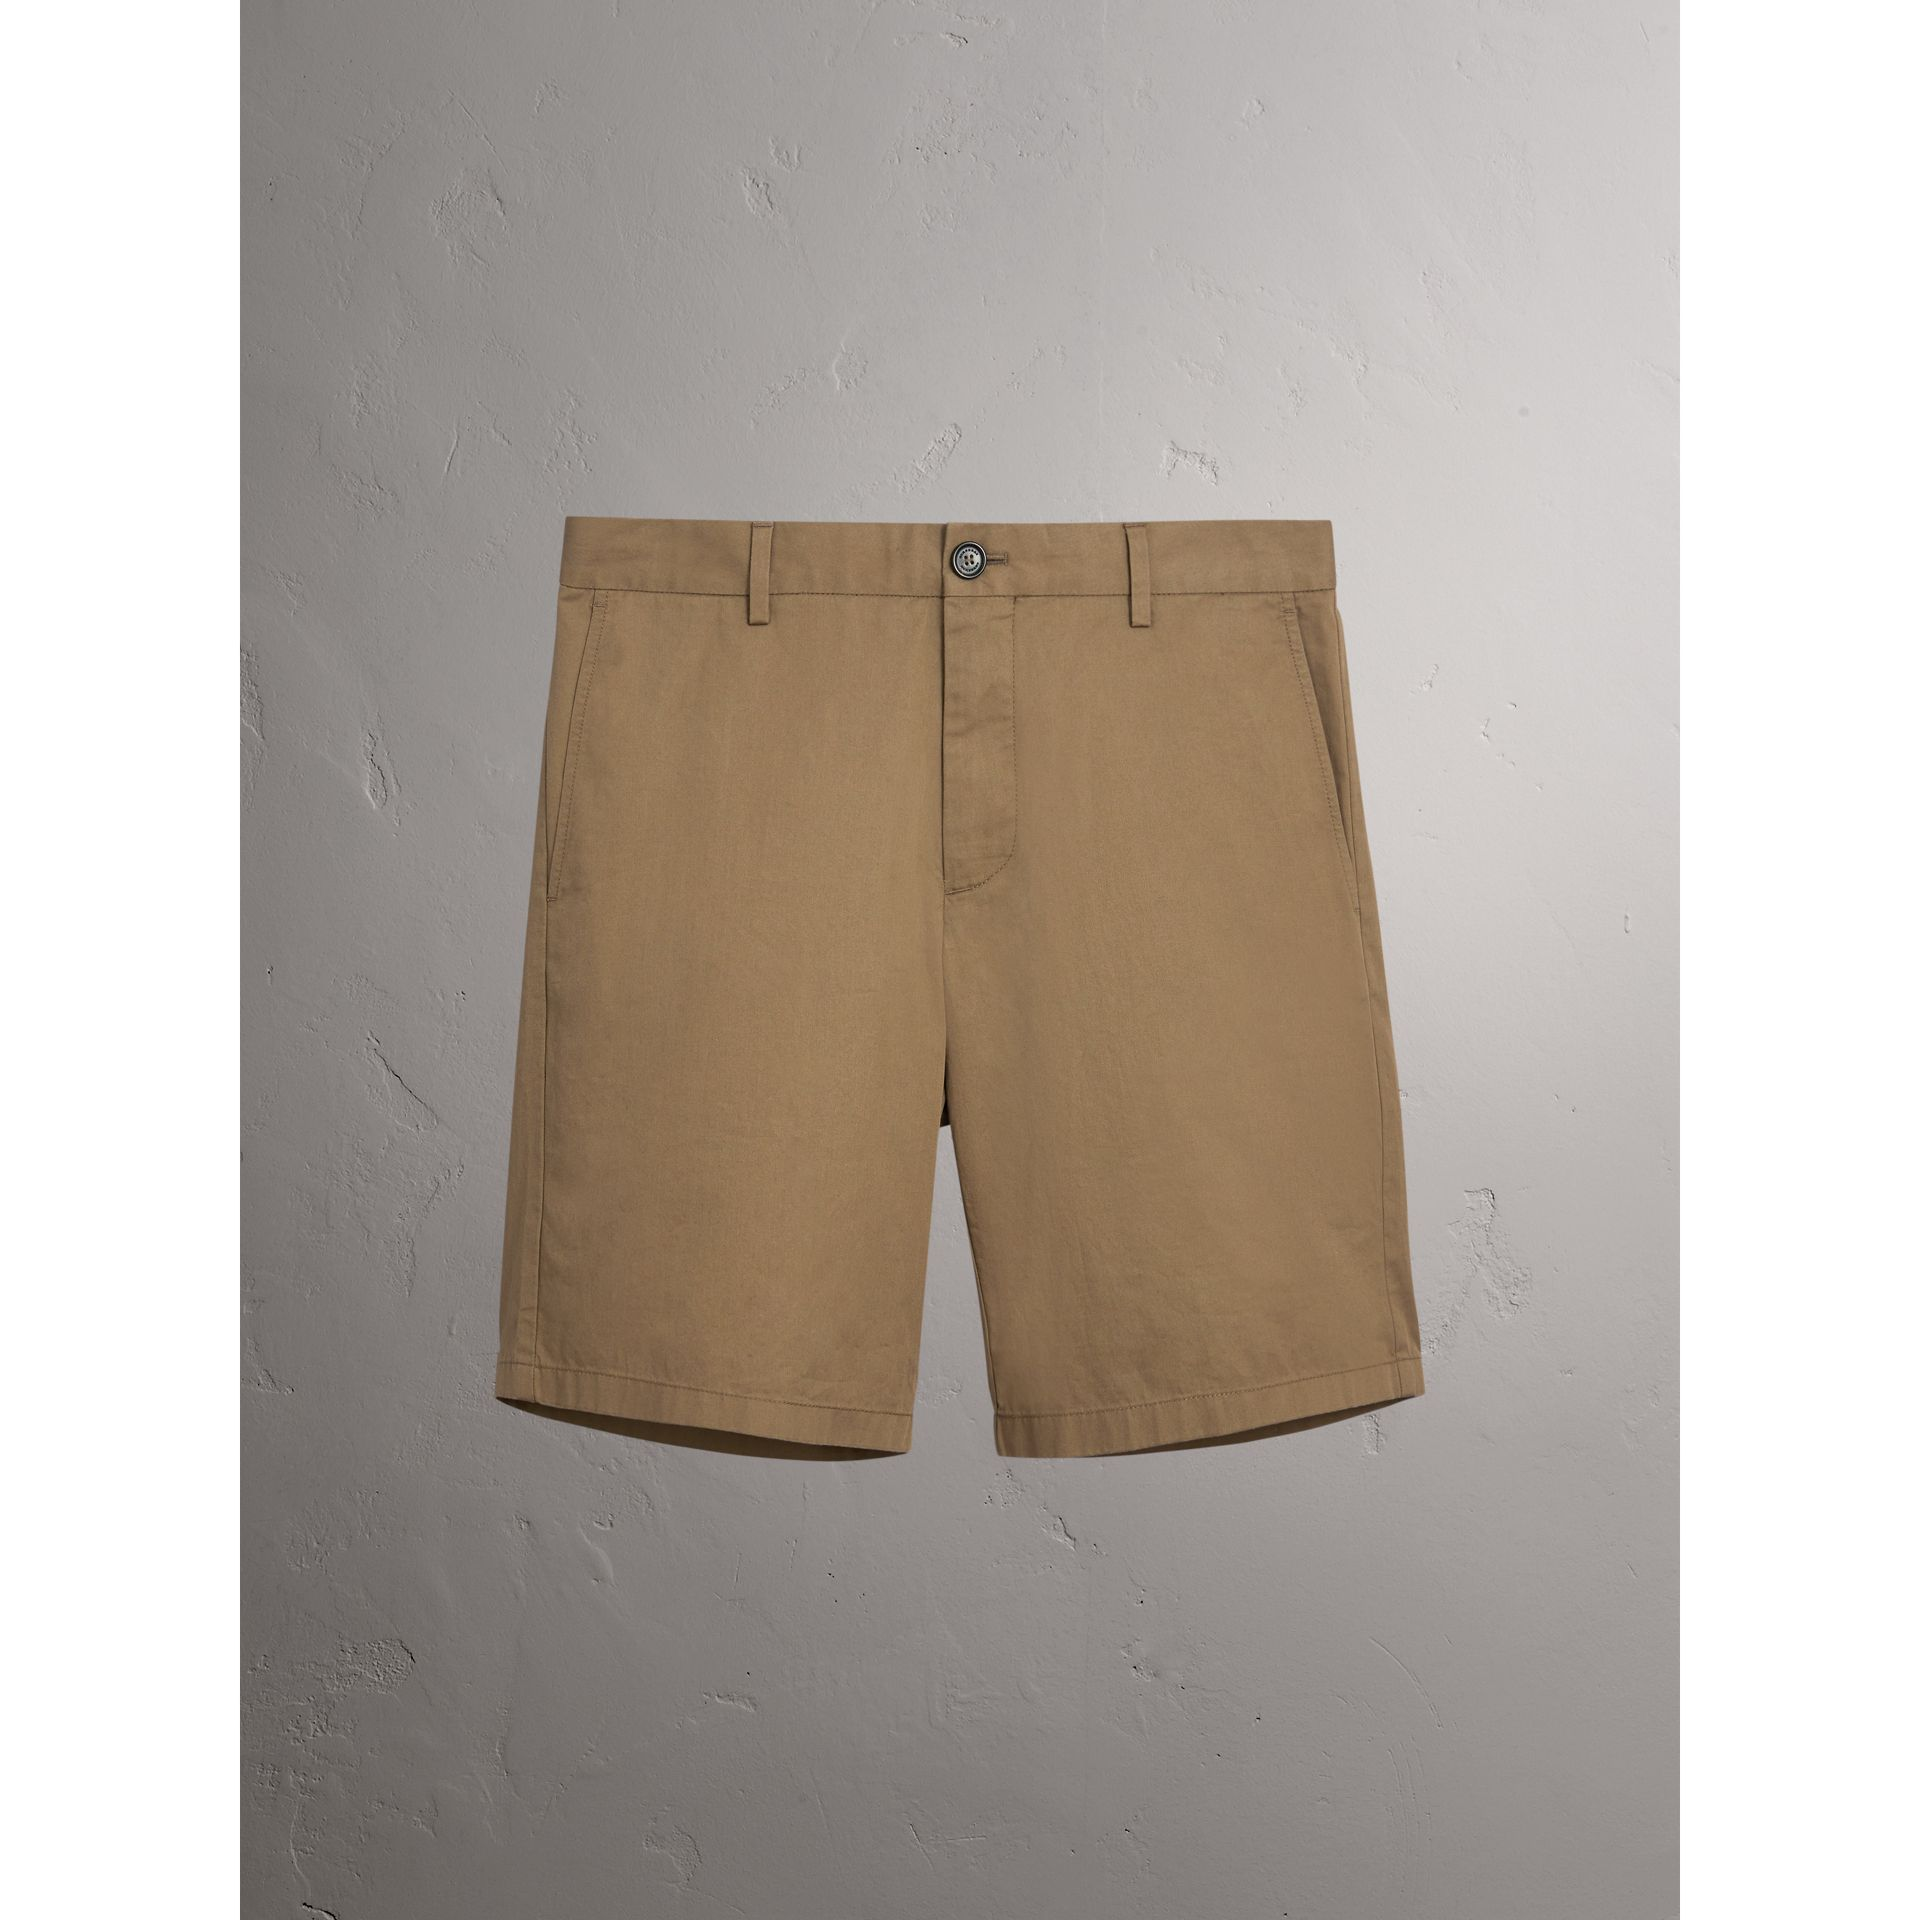 Burberry Olive Green Cotton Twill Chino Shorts